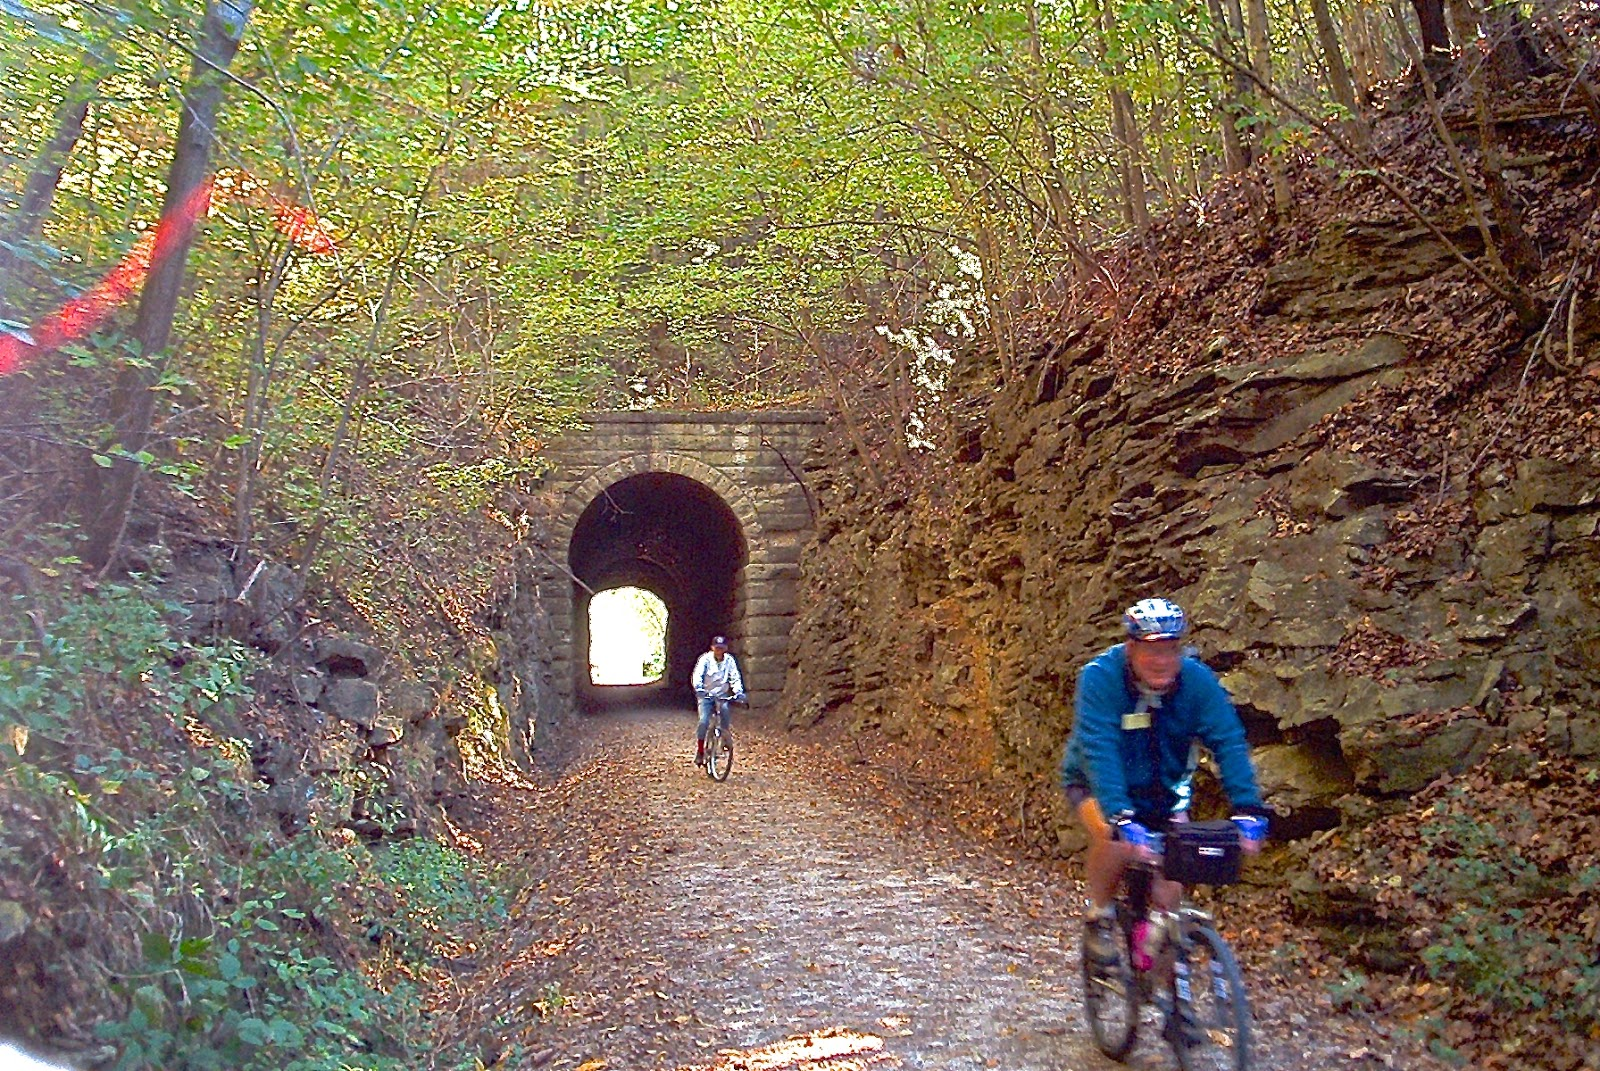 Chuck S Adventures 2002 Biking Missouri S Katy Trail With Elderhostel